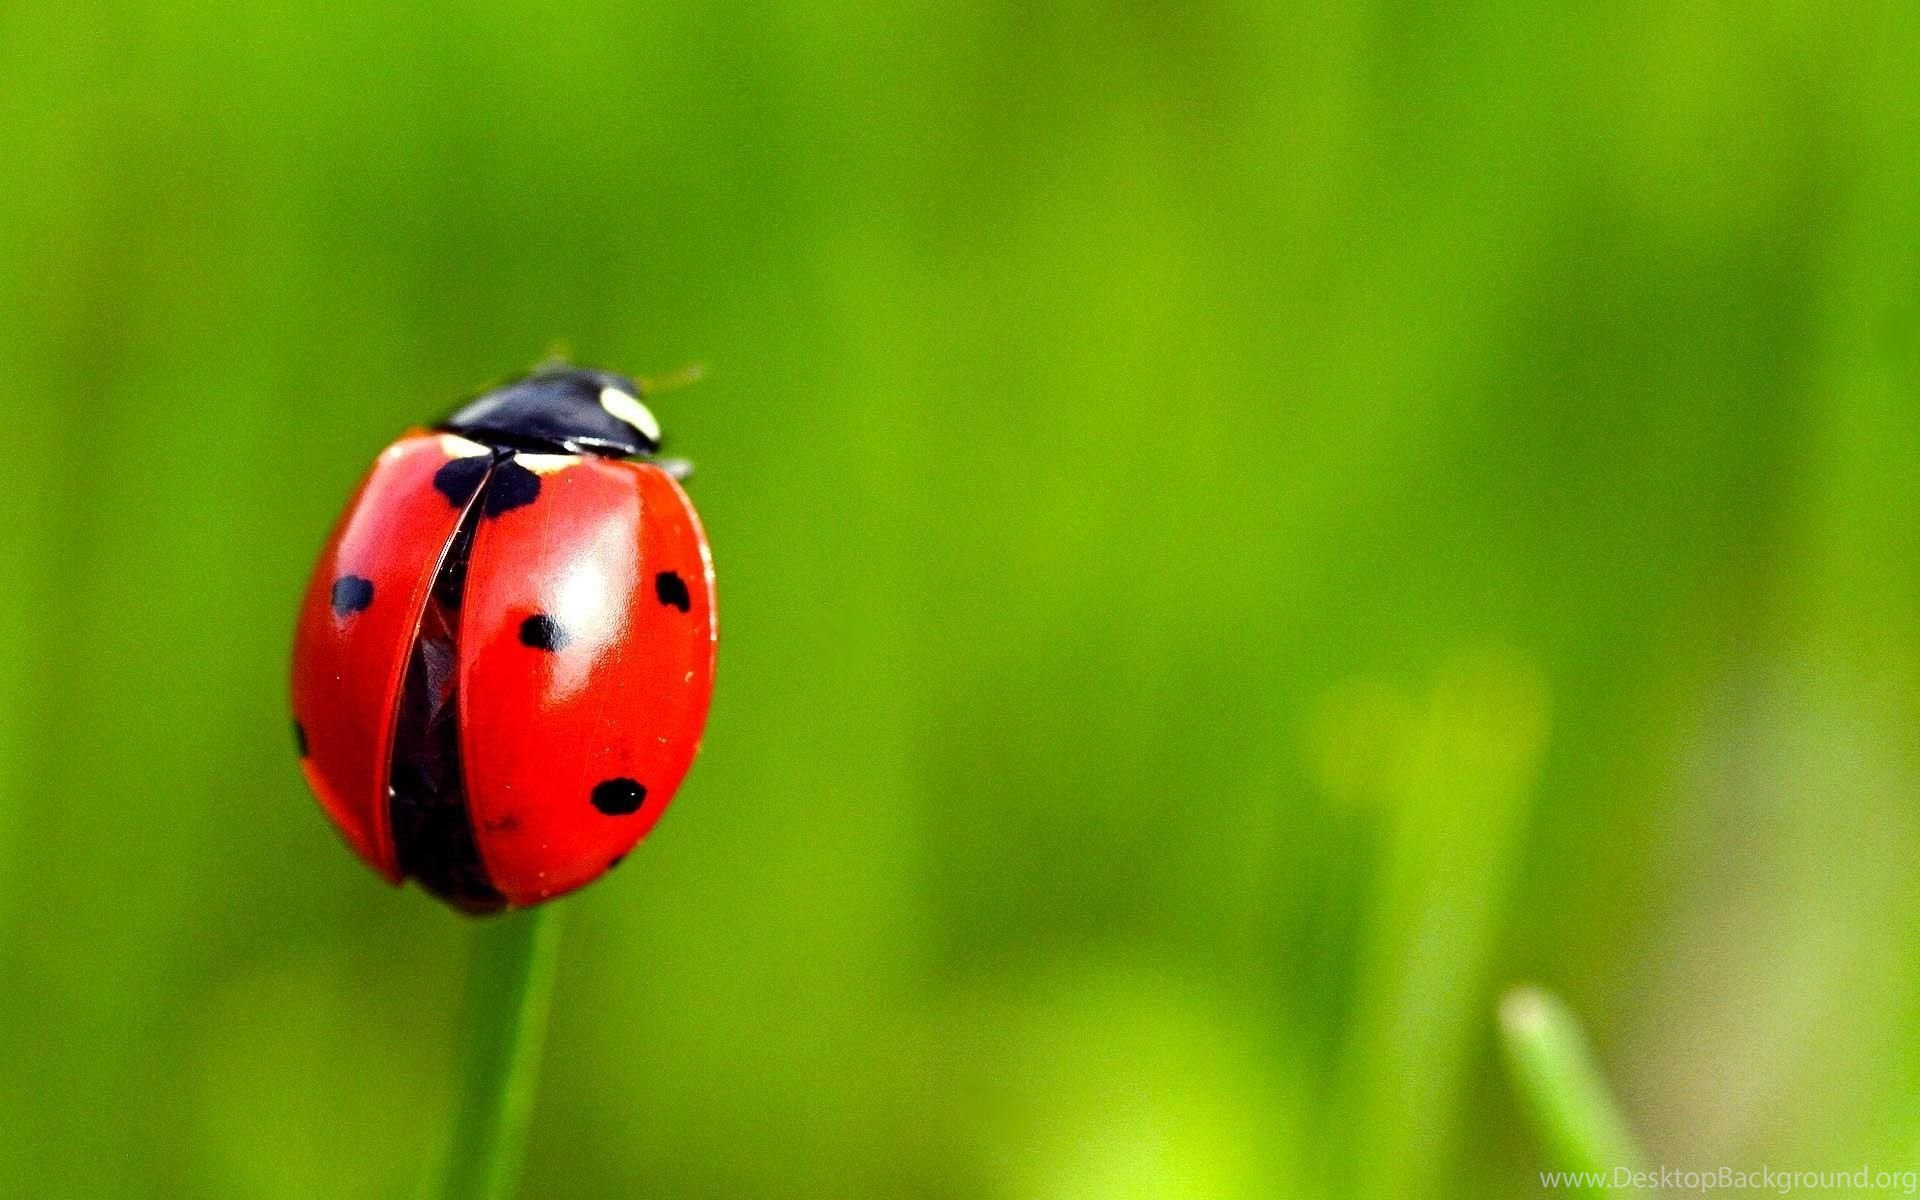 Grass Insect Ladybug Wallpapers Desktop Background